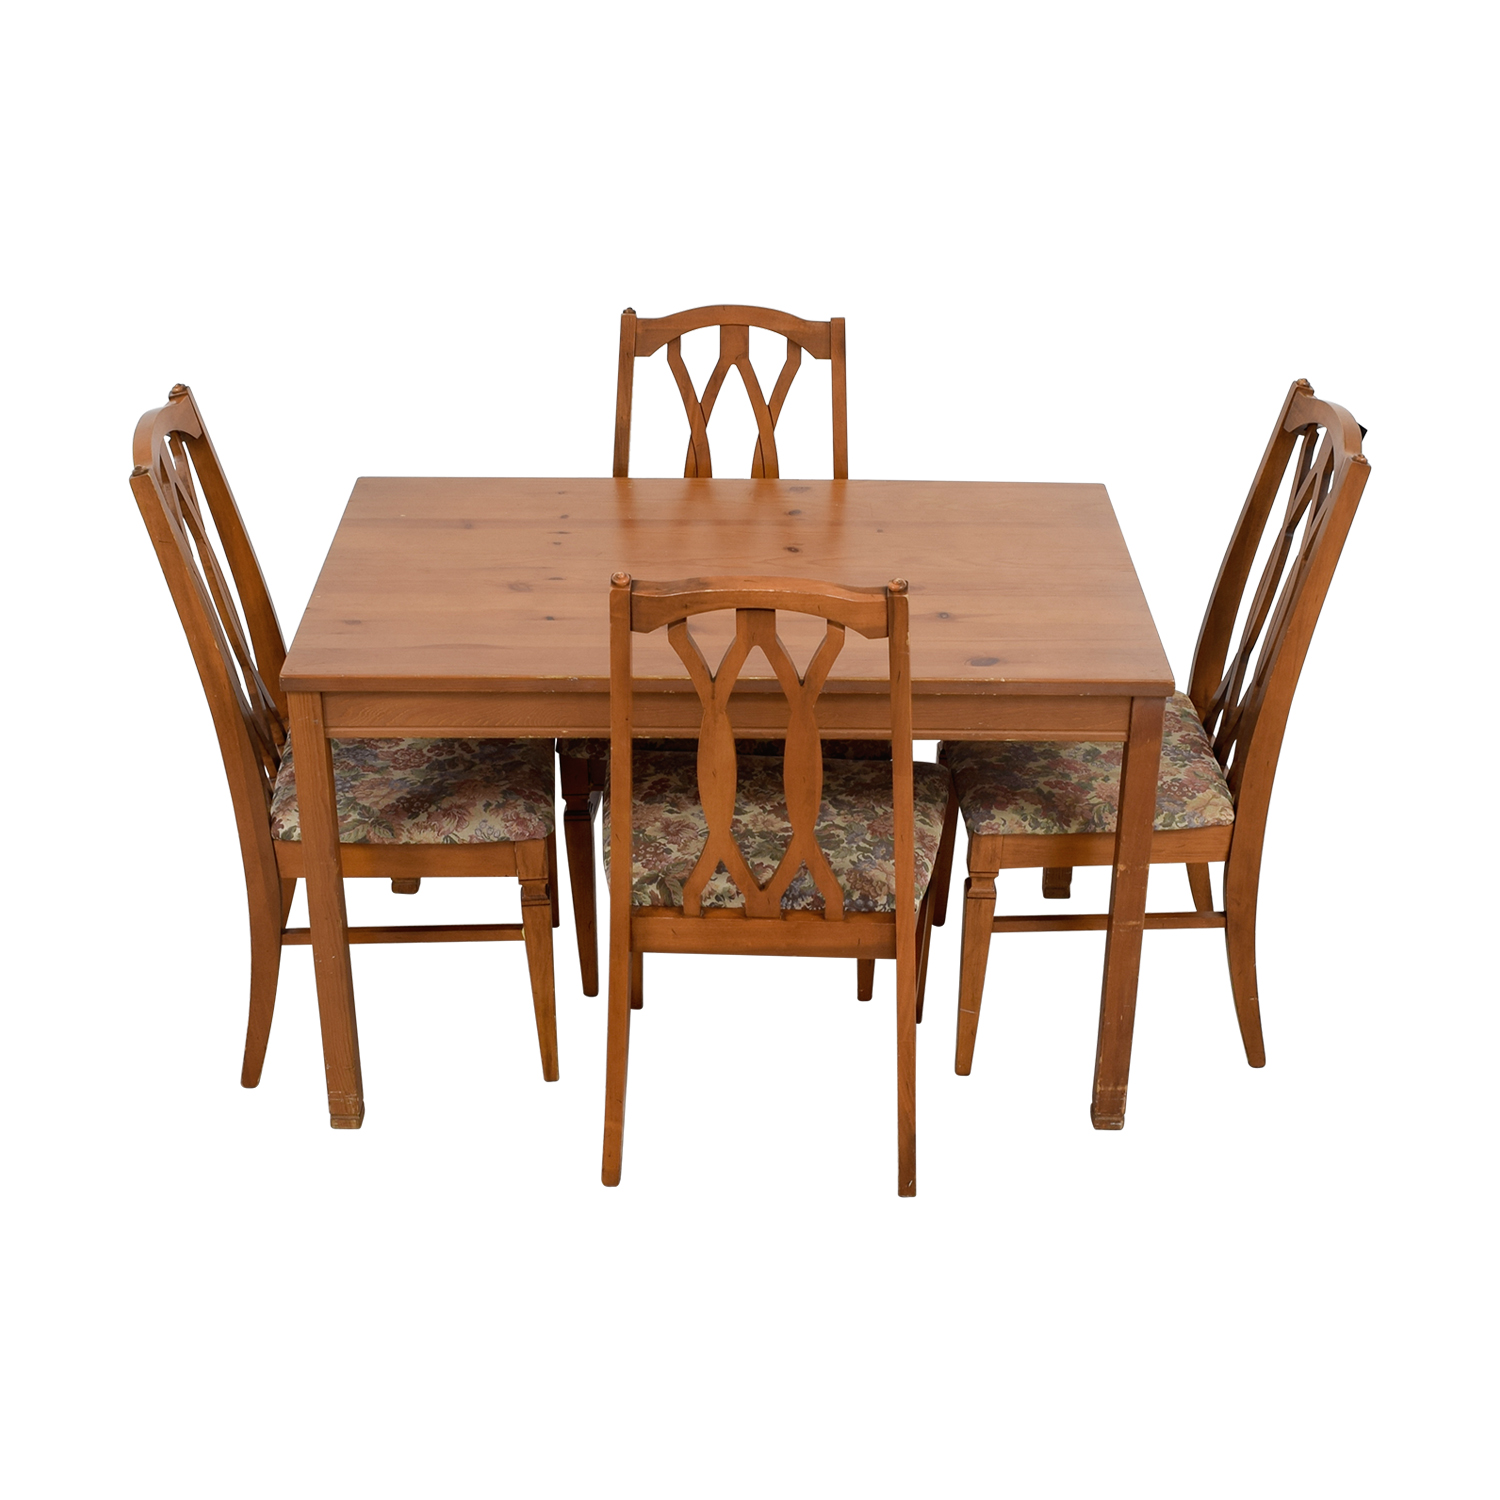 buy Wood Kitchen Table and Floral Upholstered Chairs Tables; Wood Kitchen Table and Floral Upholstered Chairs price ...  sc 1 st  Furnishare & 83% OFF - Wood Kitchen Table and Floral Upholstered Chairs / Tables